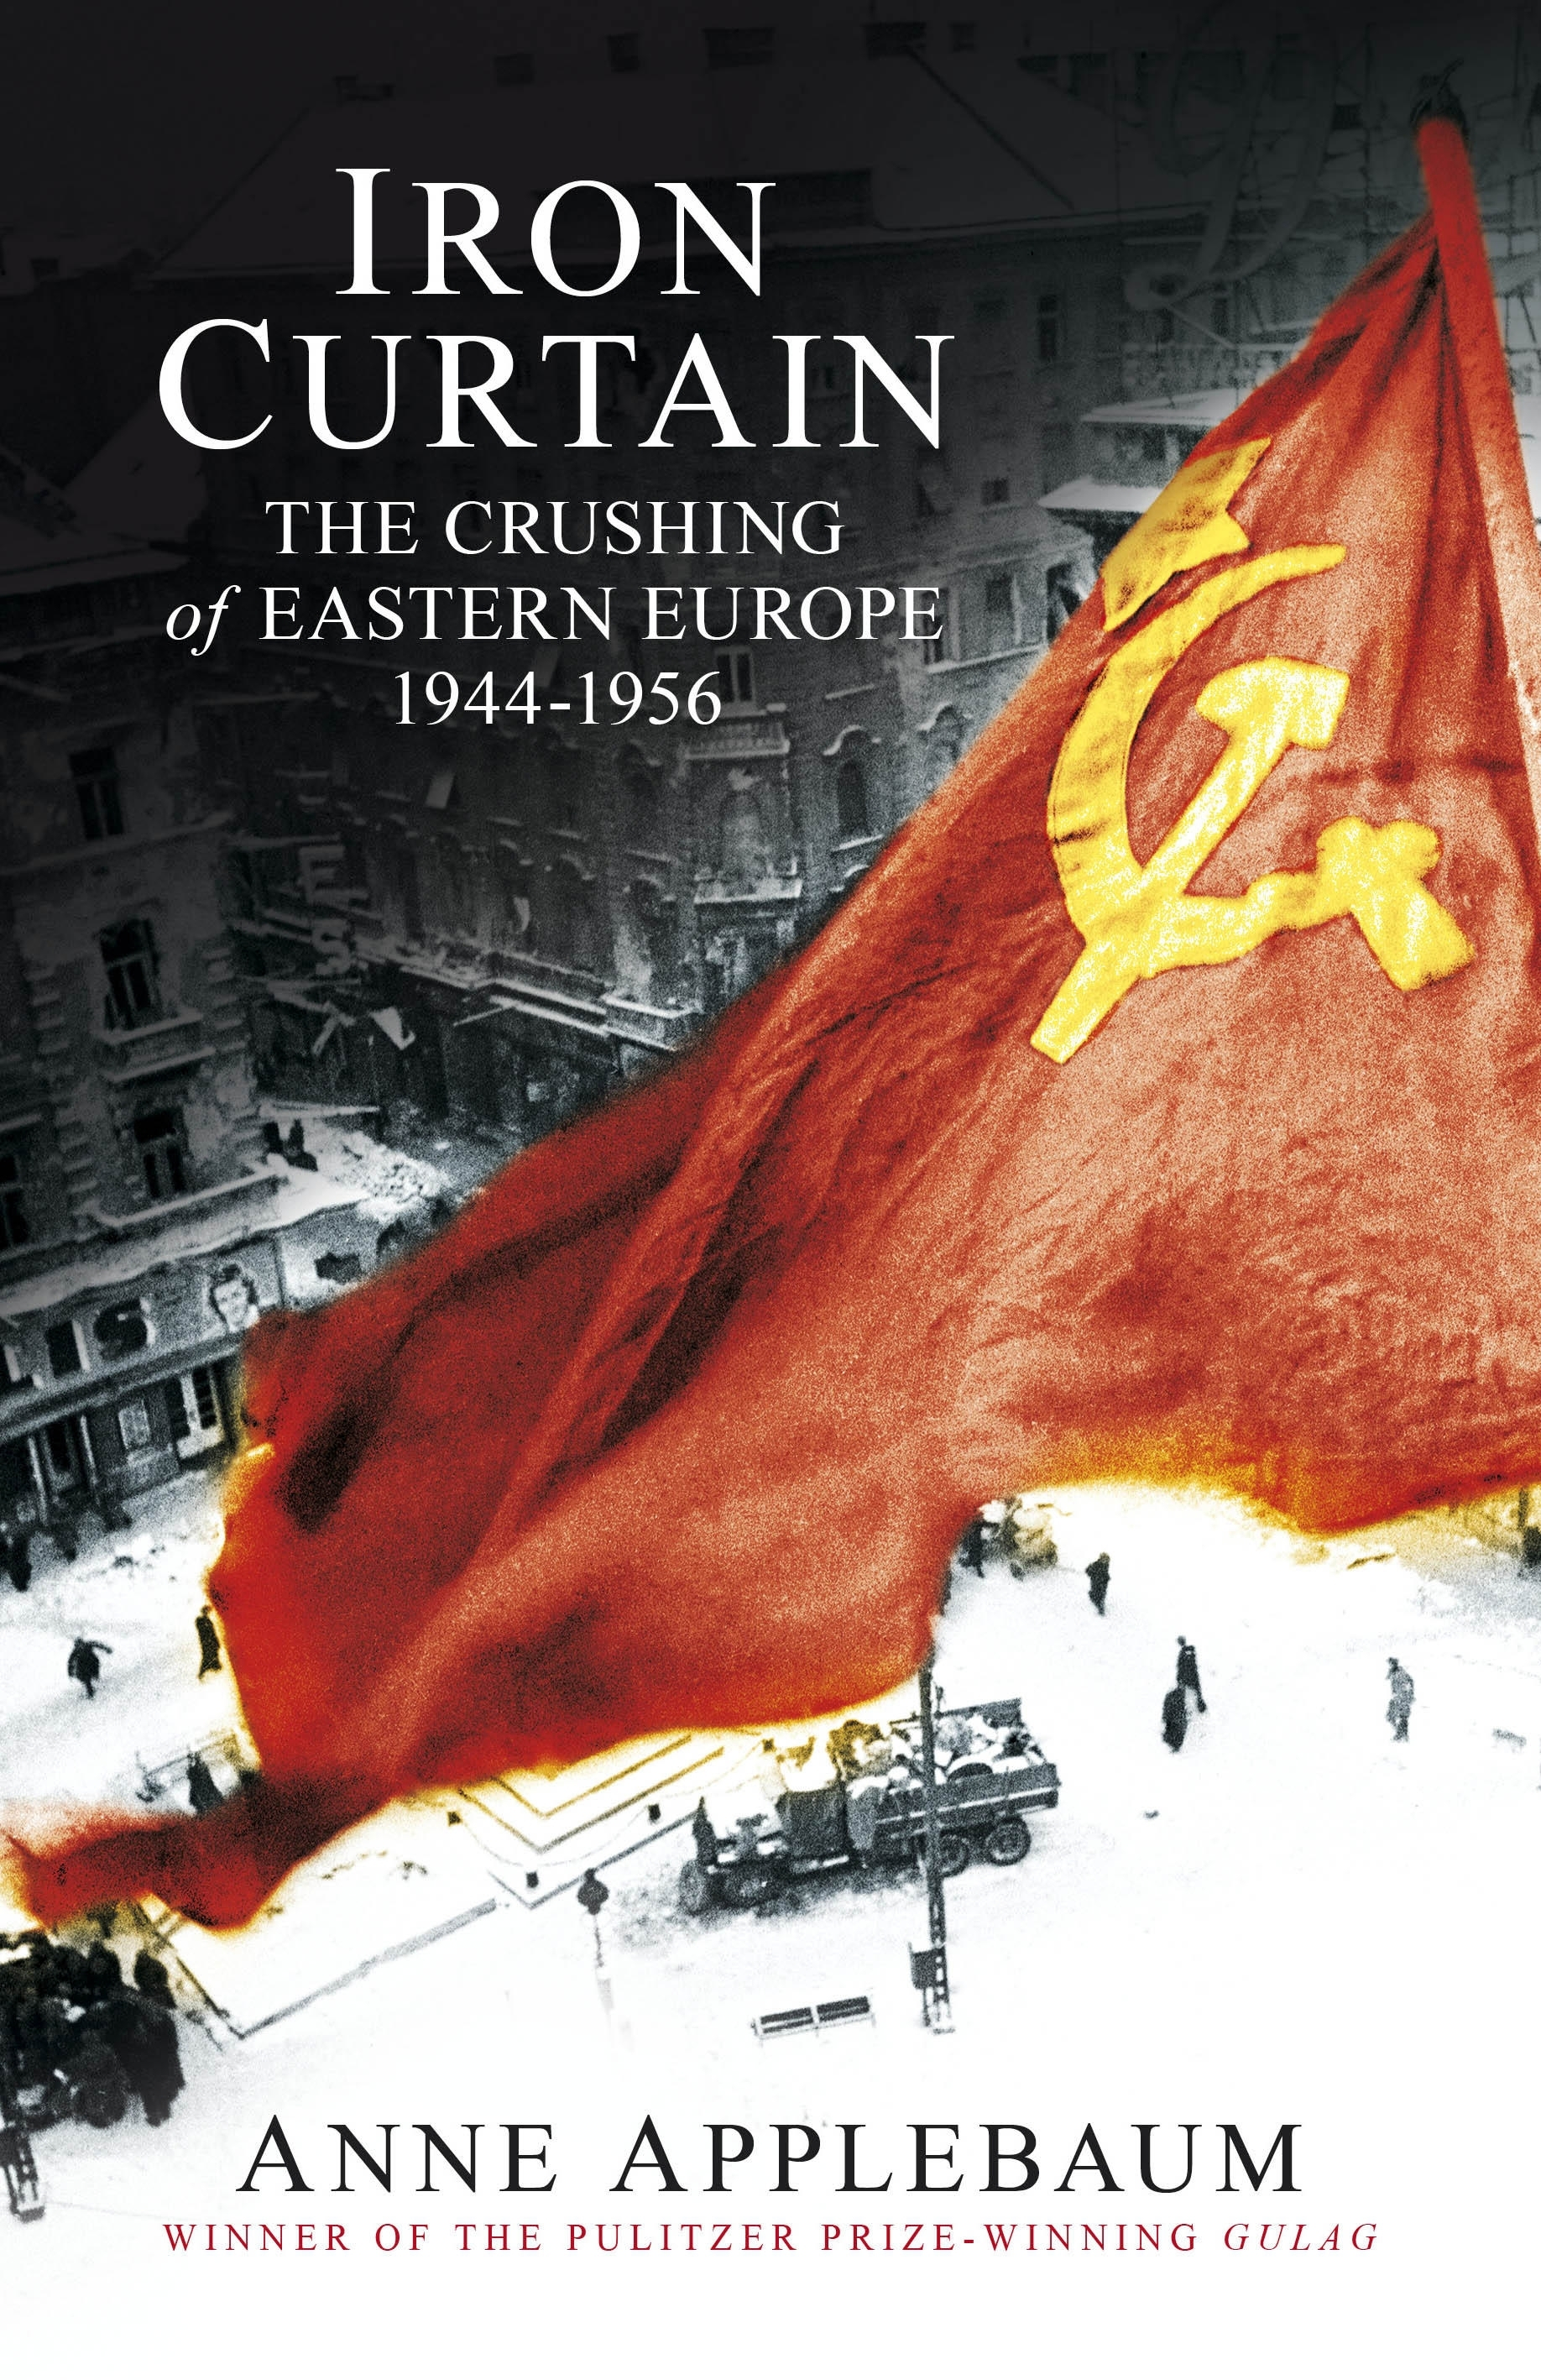 Iron Curtain: The Crushing of Eastern Europe 1944-1956. By Anne Applebaum.